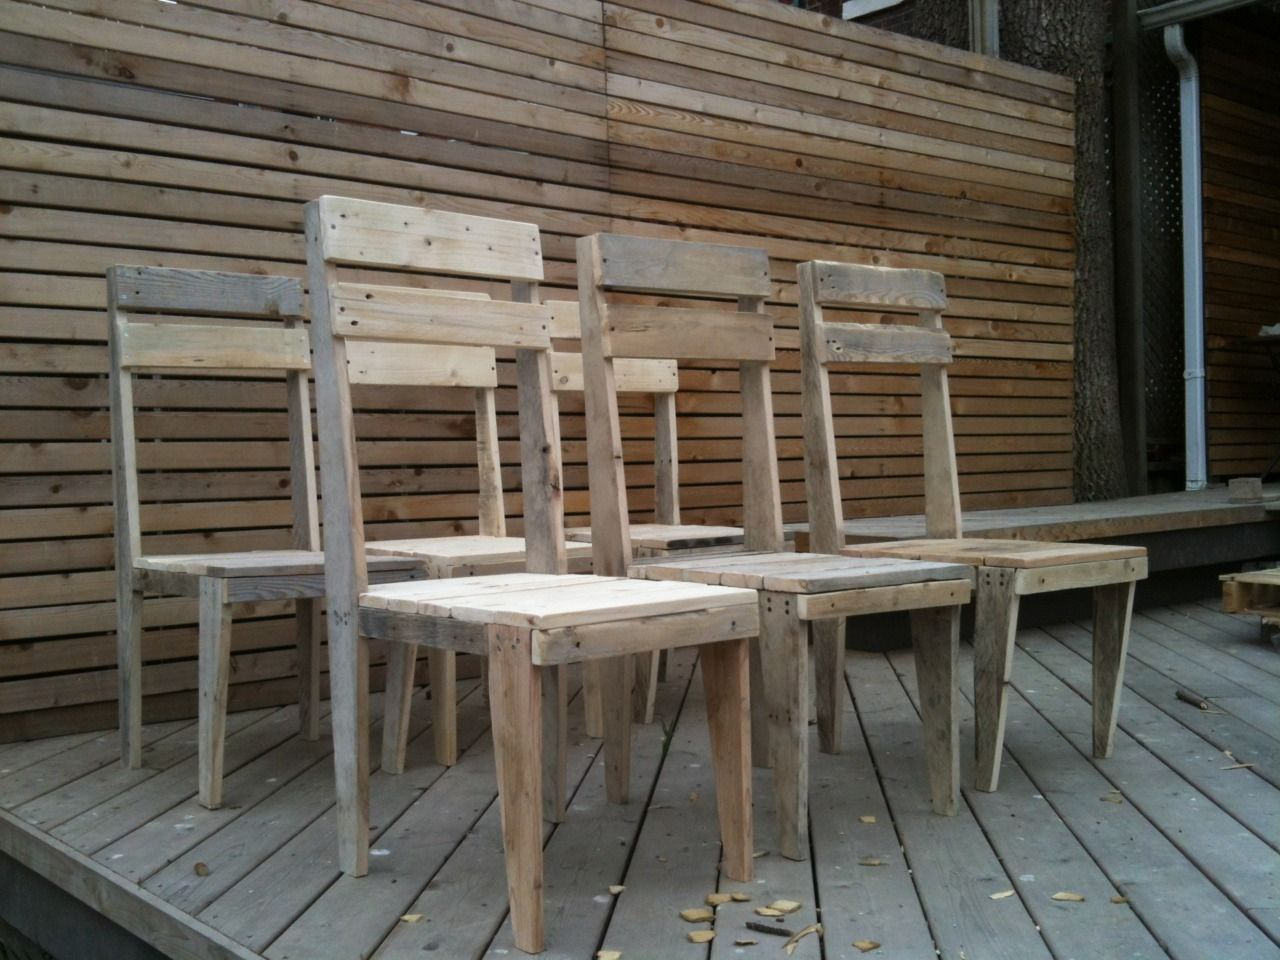 Mobili Pallet ~ Pallet furniture 1280x960 pallet furniture plans finding the right